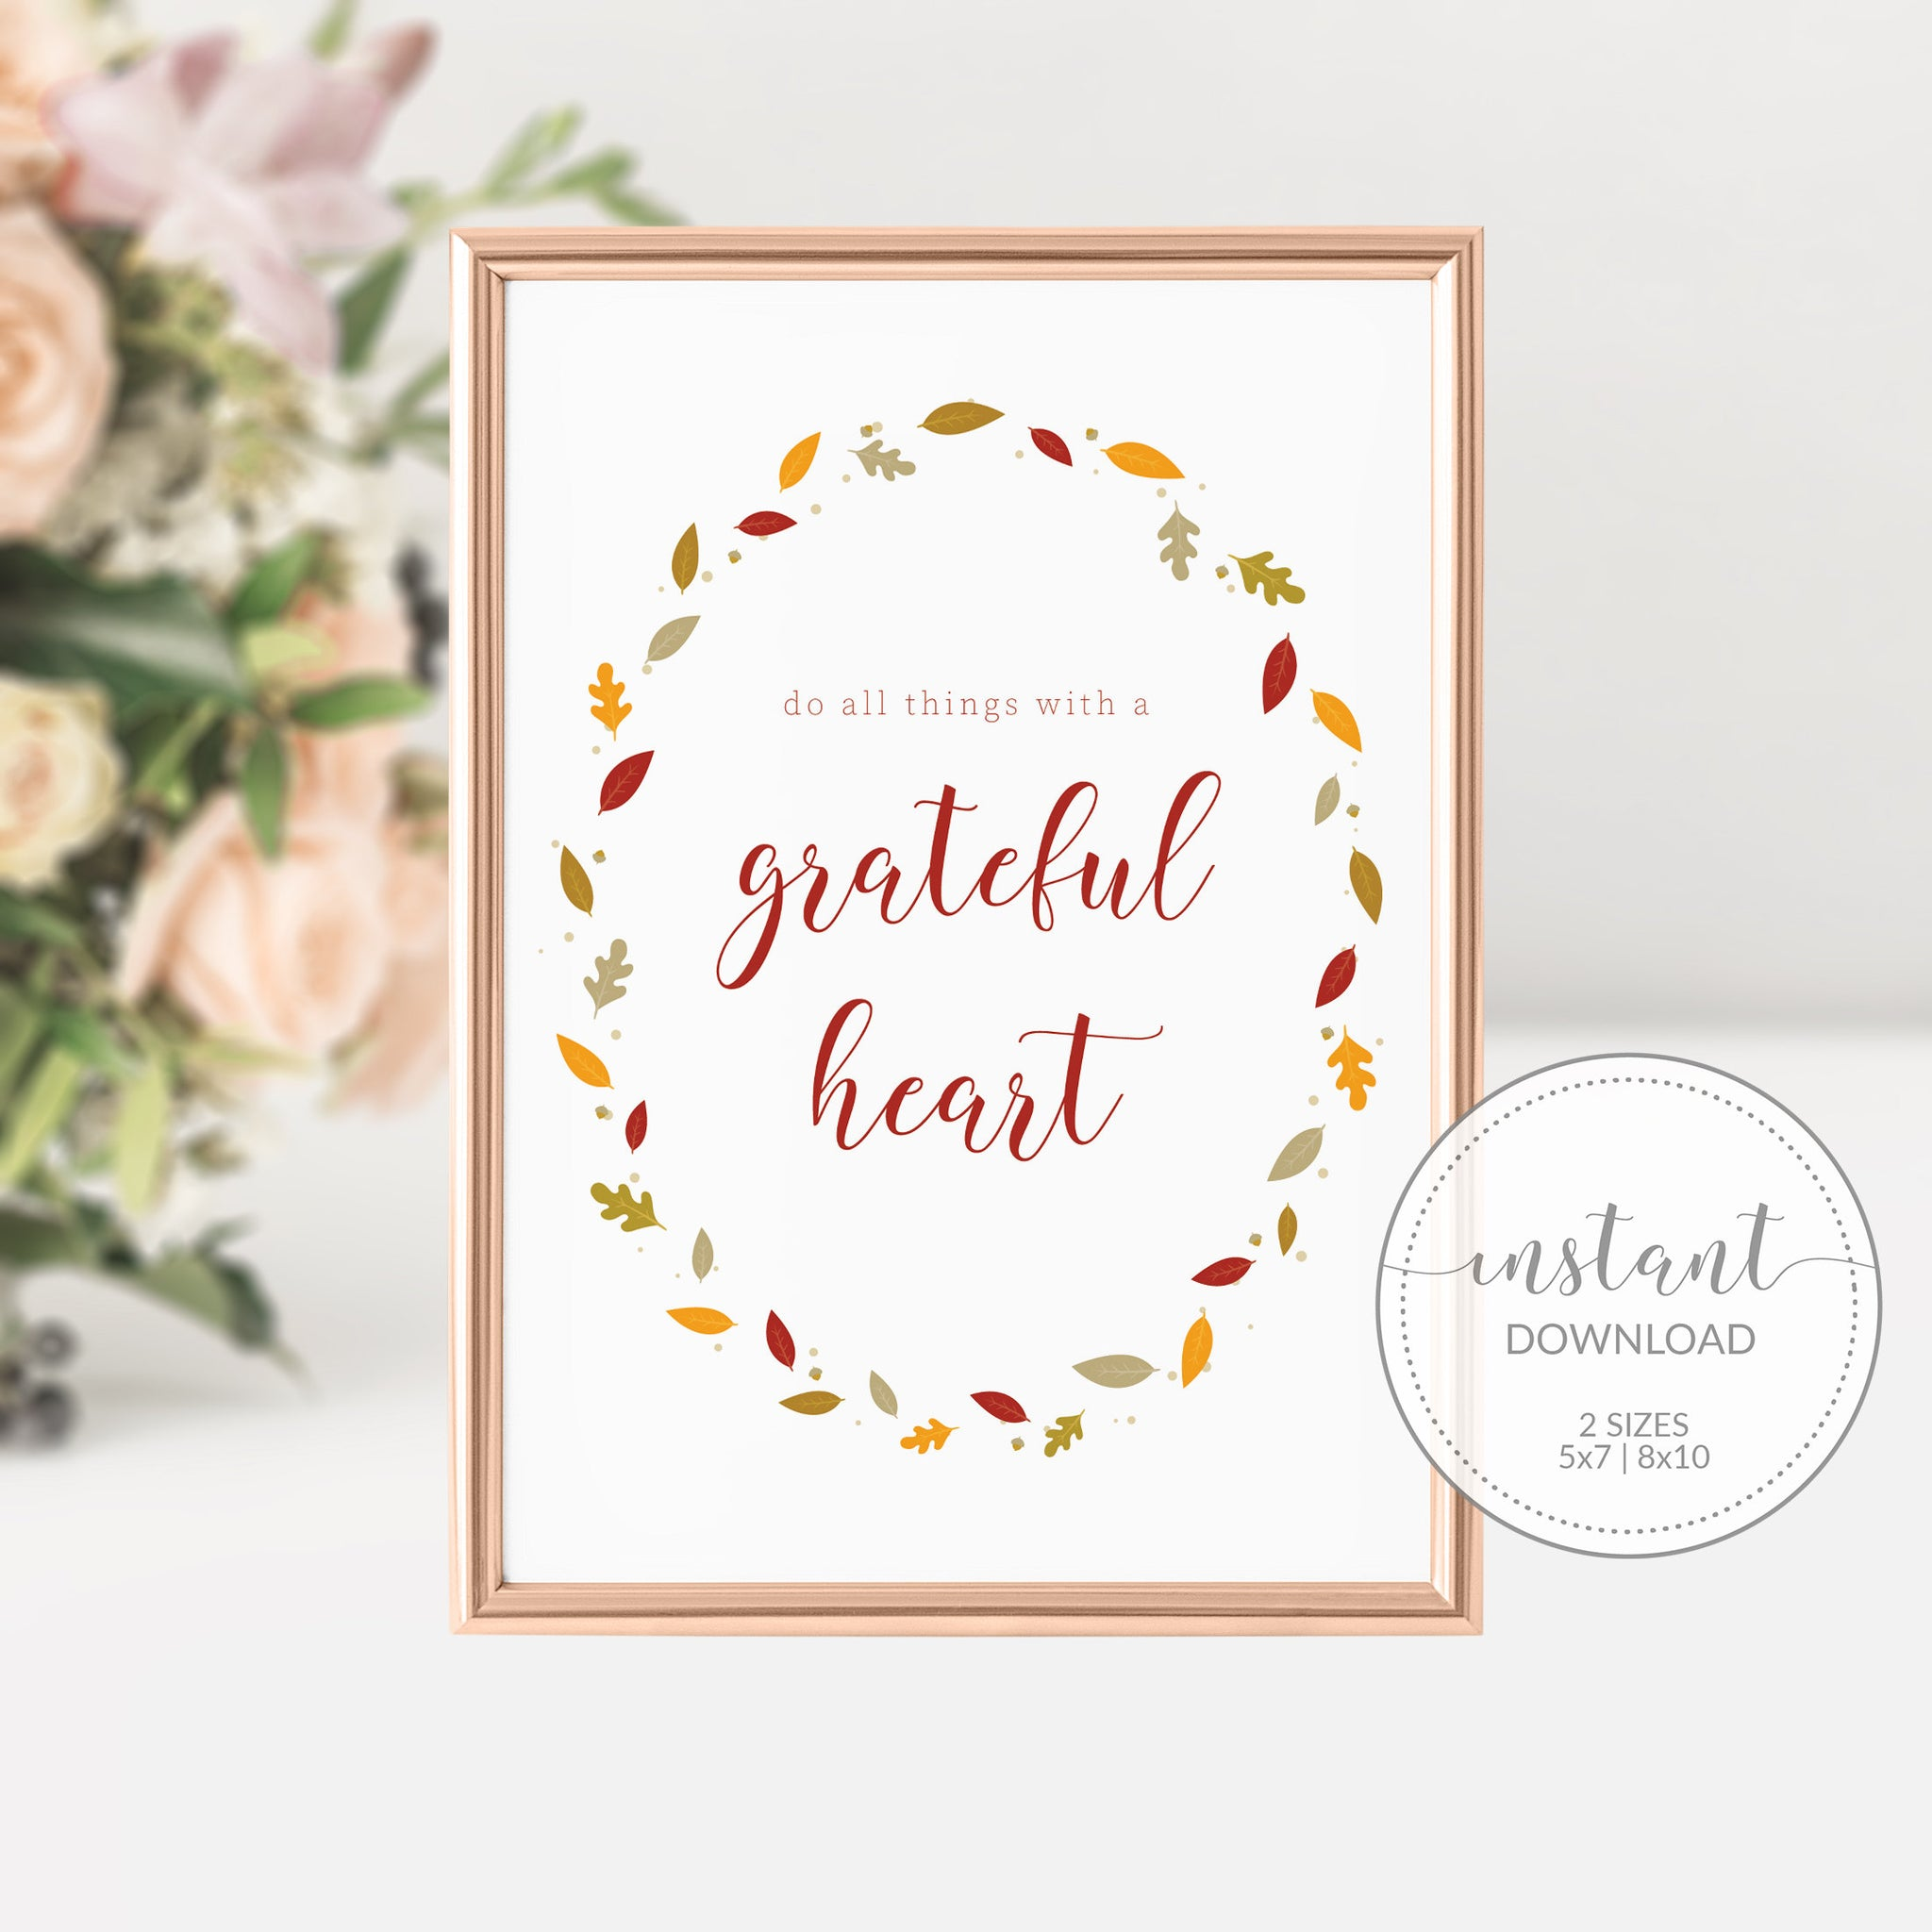 Thanksgiving Sign, Fall Decor Printable, Do All Things With a Grateful Heart Sign, 1 Thessalonians 5 18 Sign, INSTANT DOWNLOAD - FL100 - @PlumPolkaDot